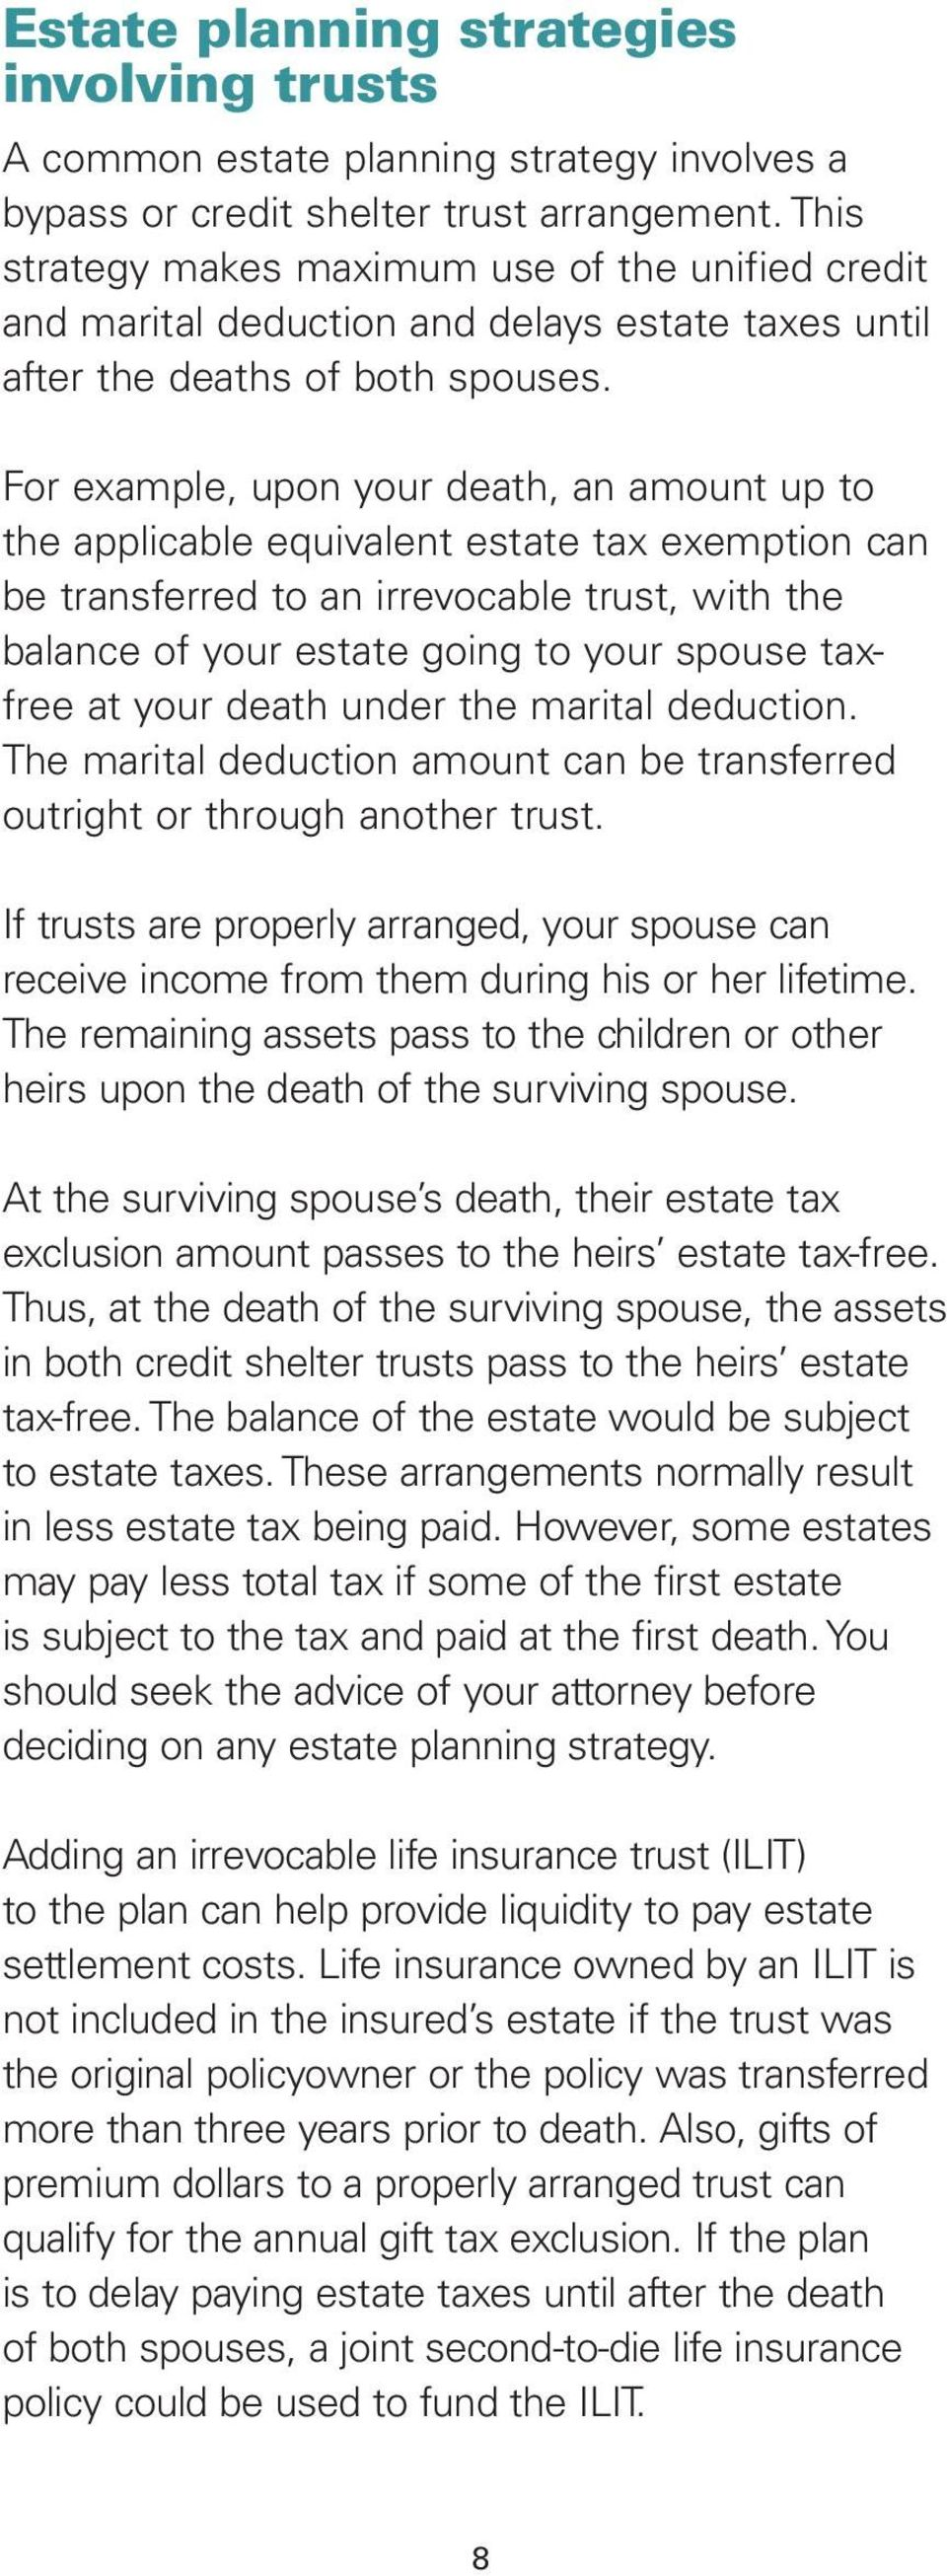 For example, upon your death, an amount up to the applicable equivalent estate tax exemption can be transferred to an irrevocable trust, with the balance of your estate going to your spouse taxfree